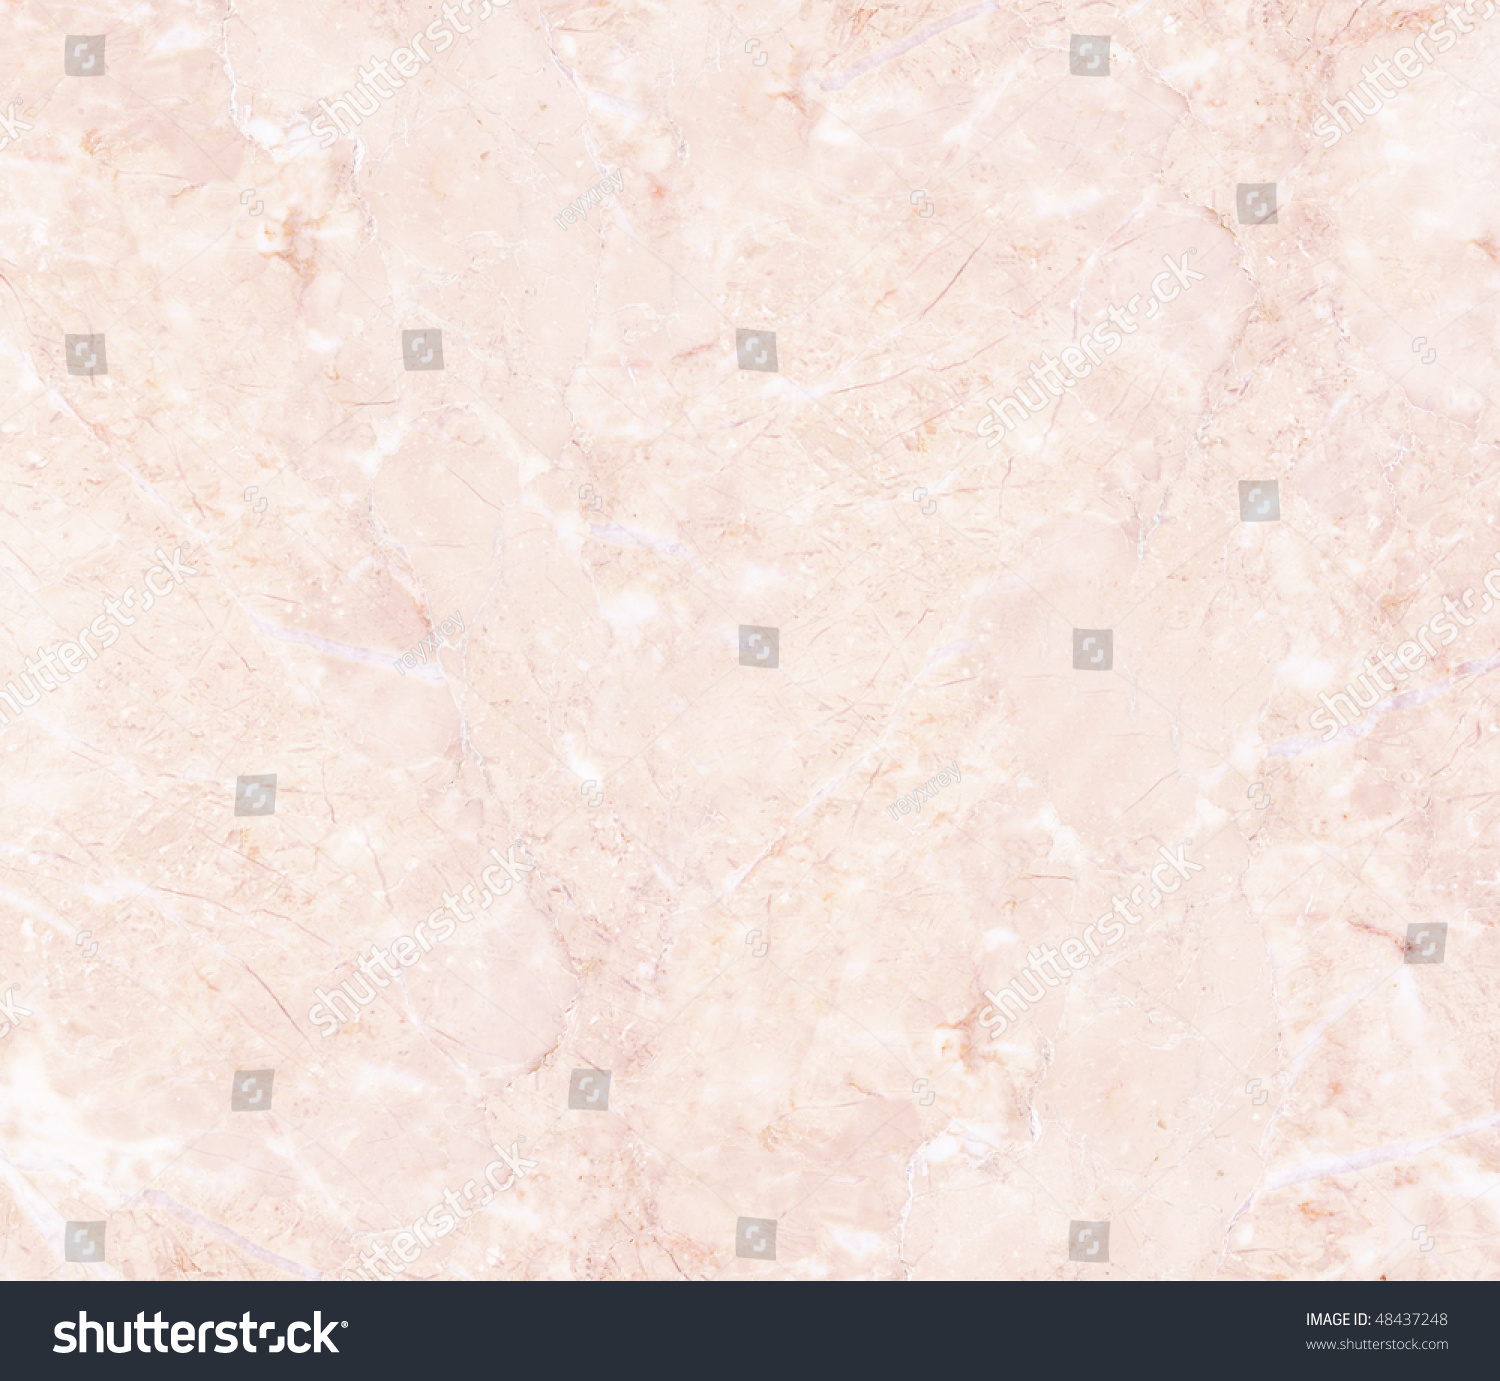 Light Pink Marble : Light pink marble stock photo shutterstock